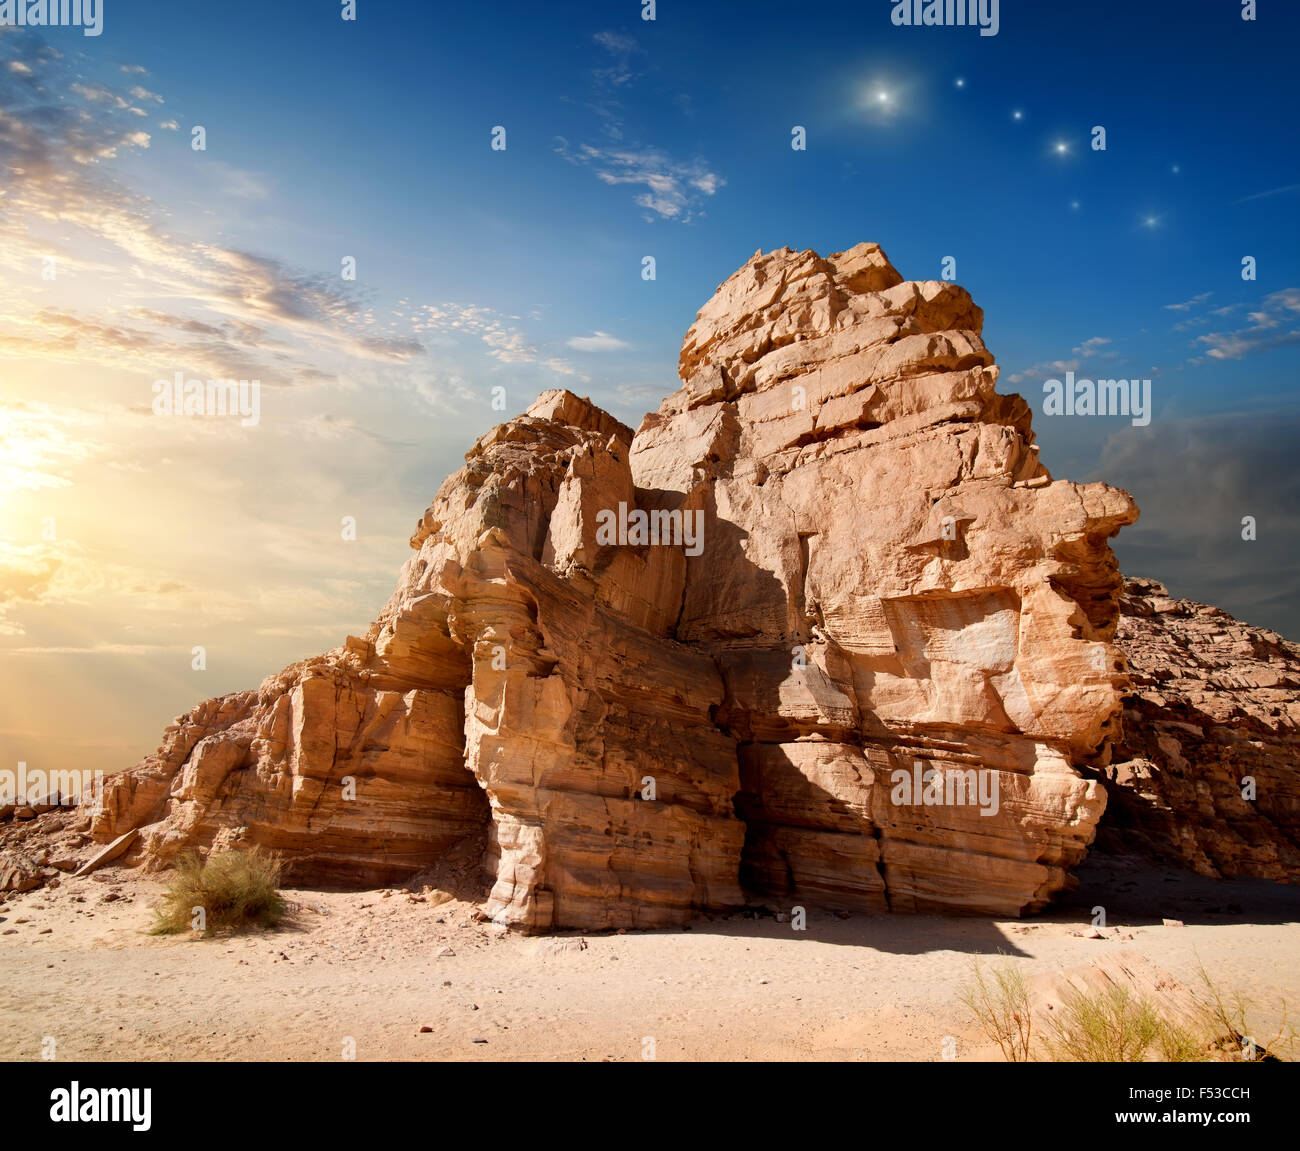 Early morning in mountains of Sinai canyon - Stock Image